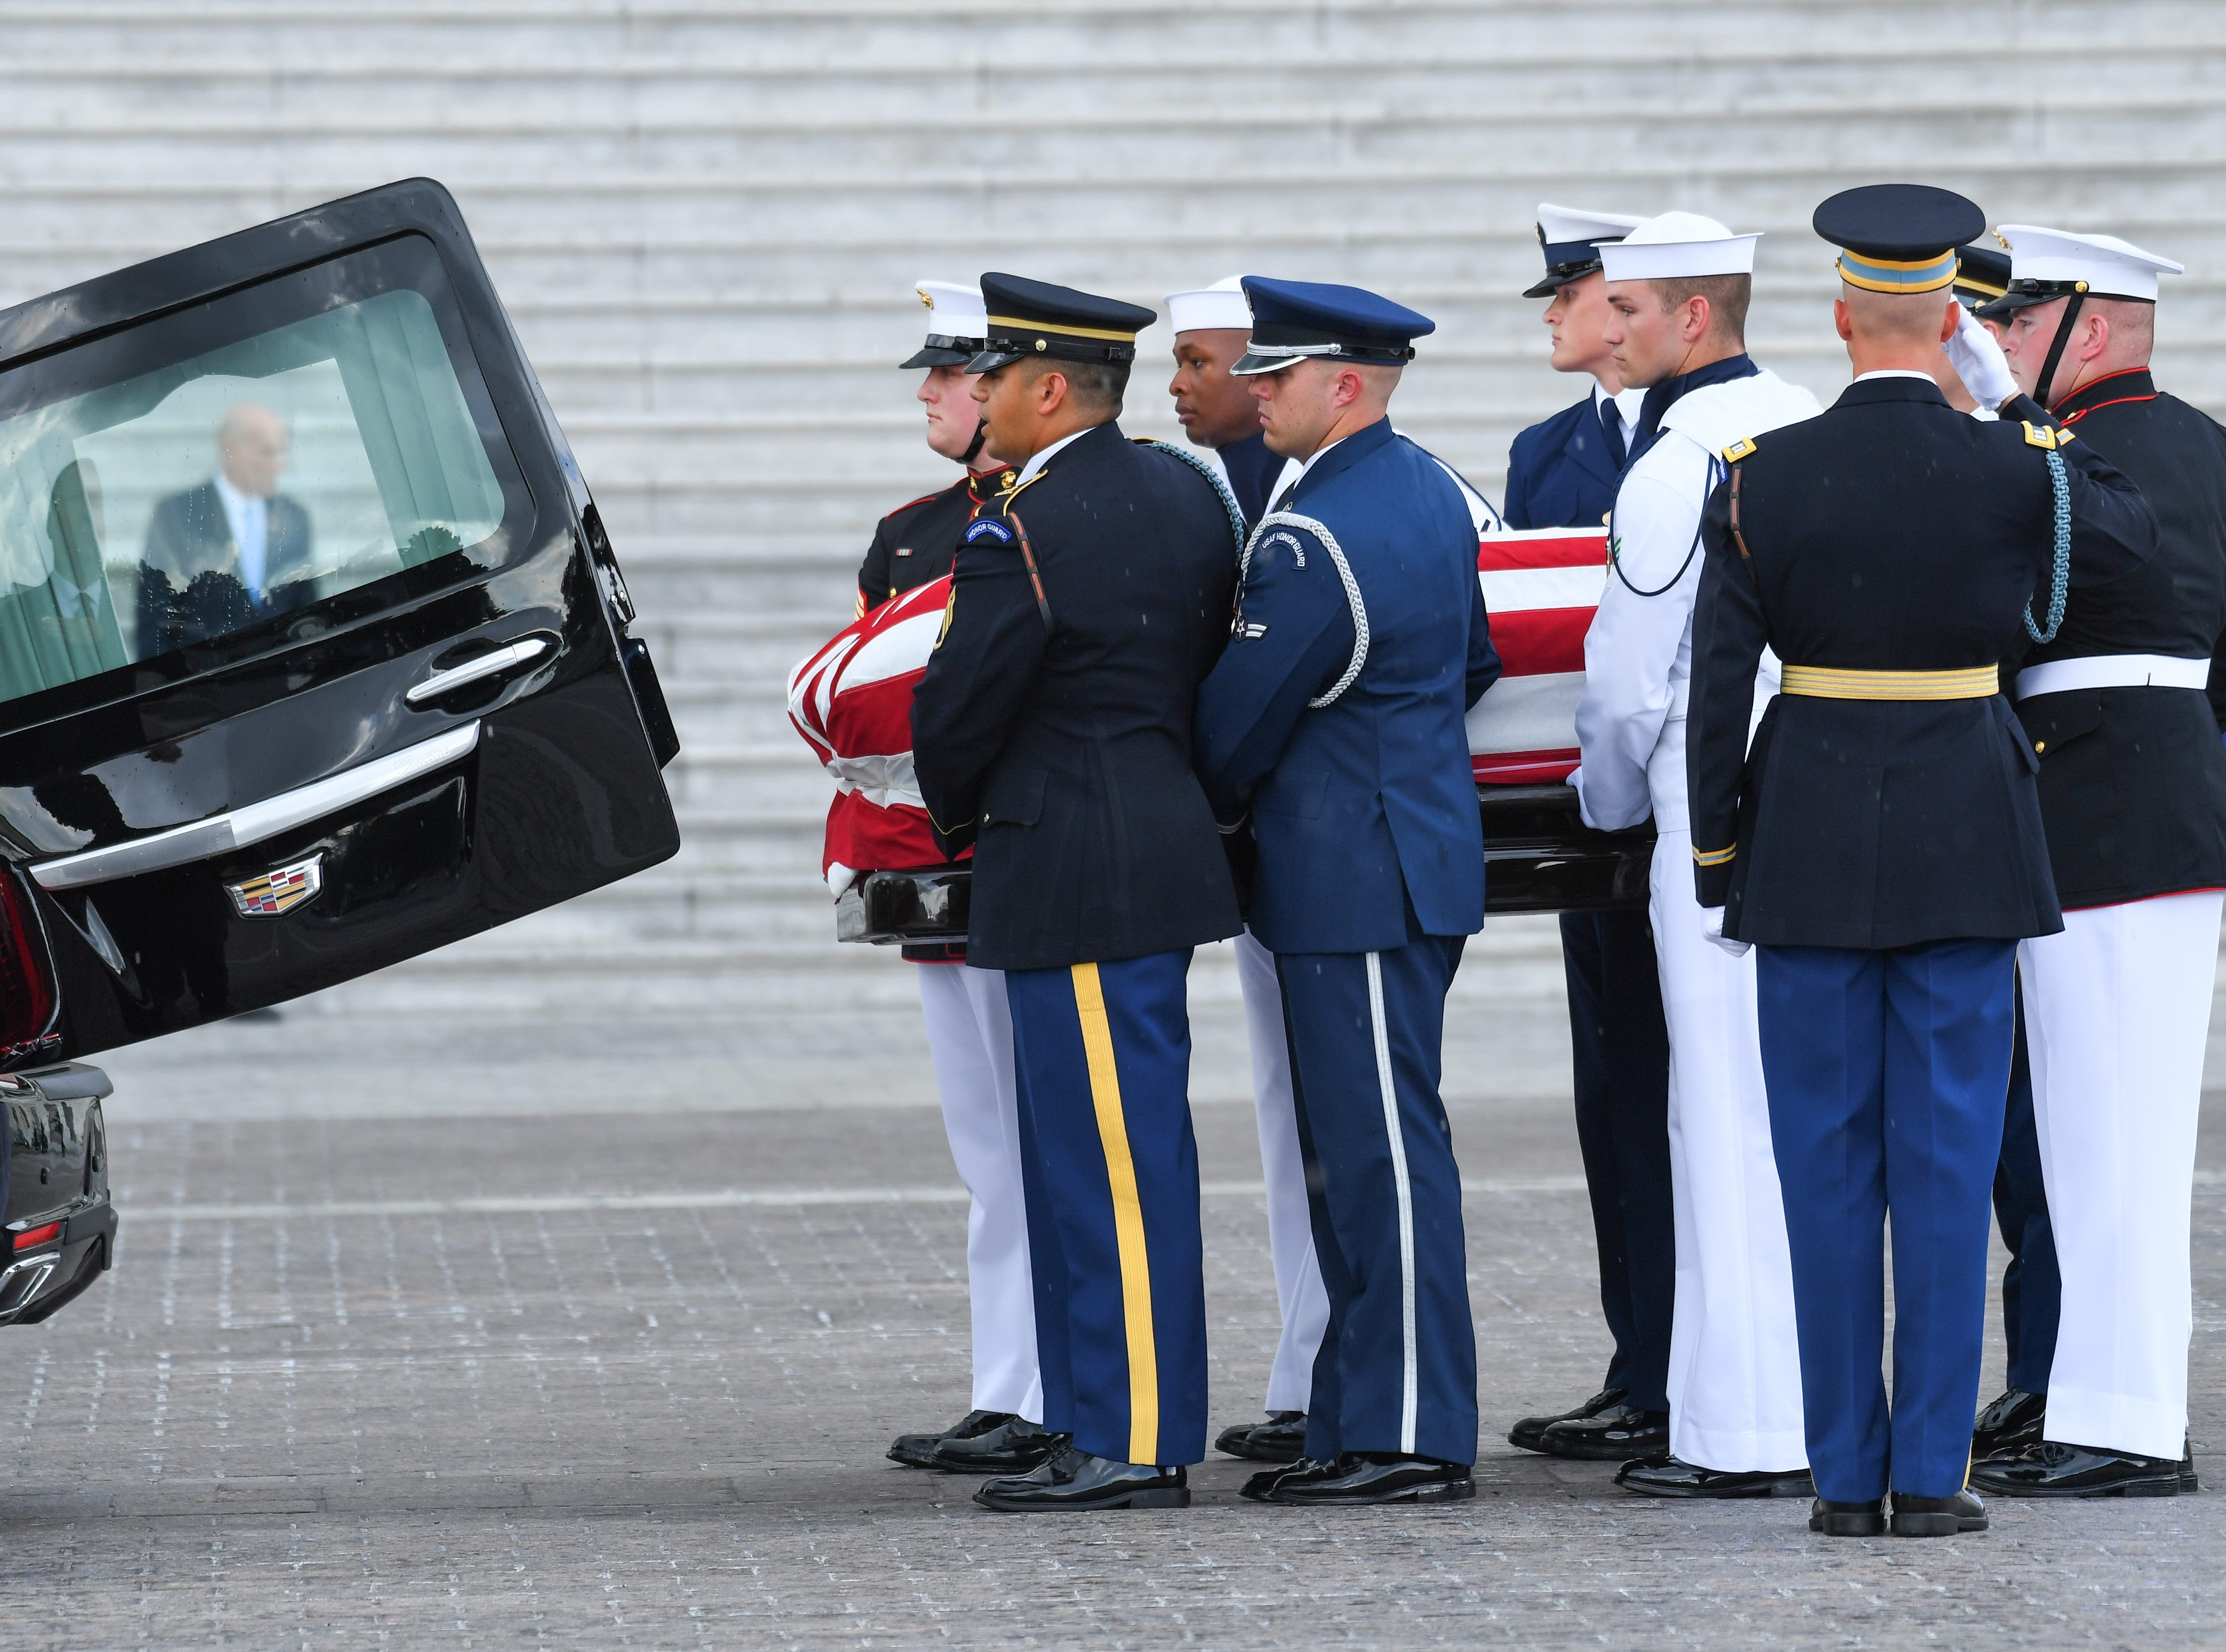 The body of John McCain arrives at the U.S. Capitol where he will lie in state in Washington on Aug. 31, 2018.